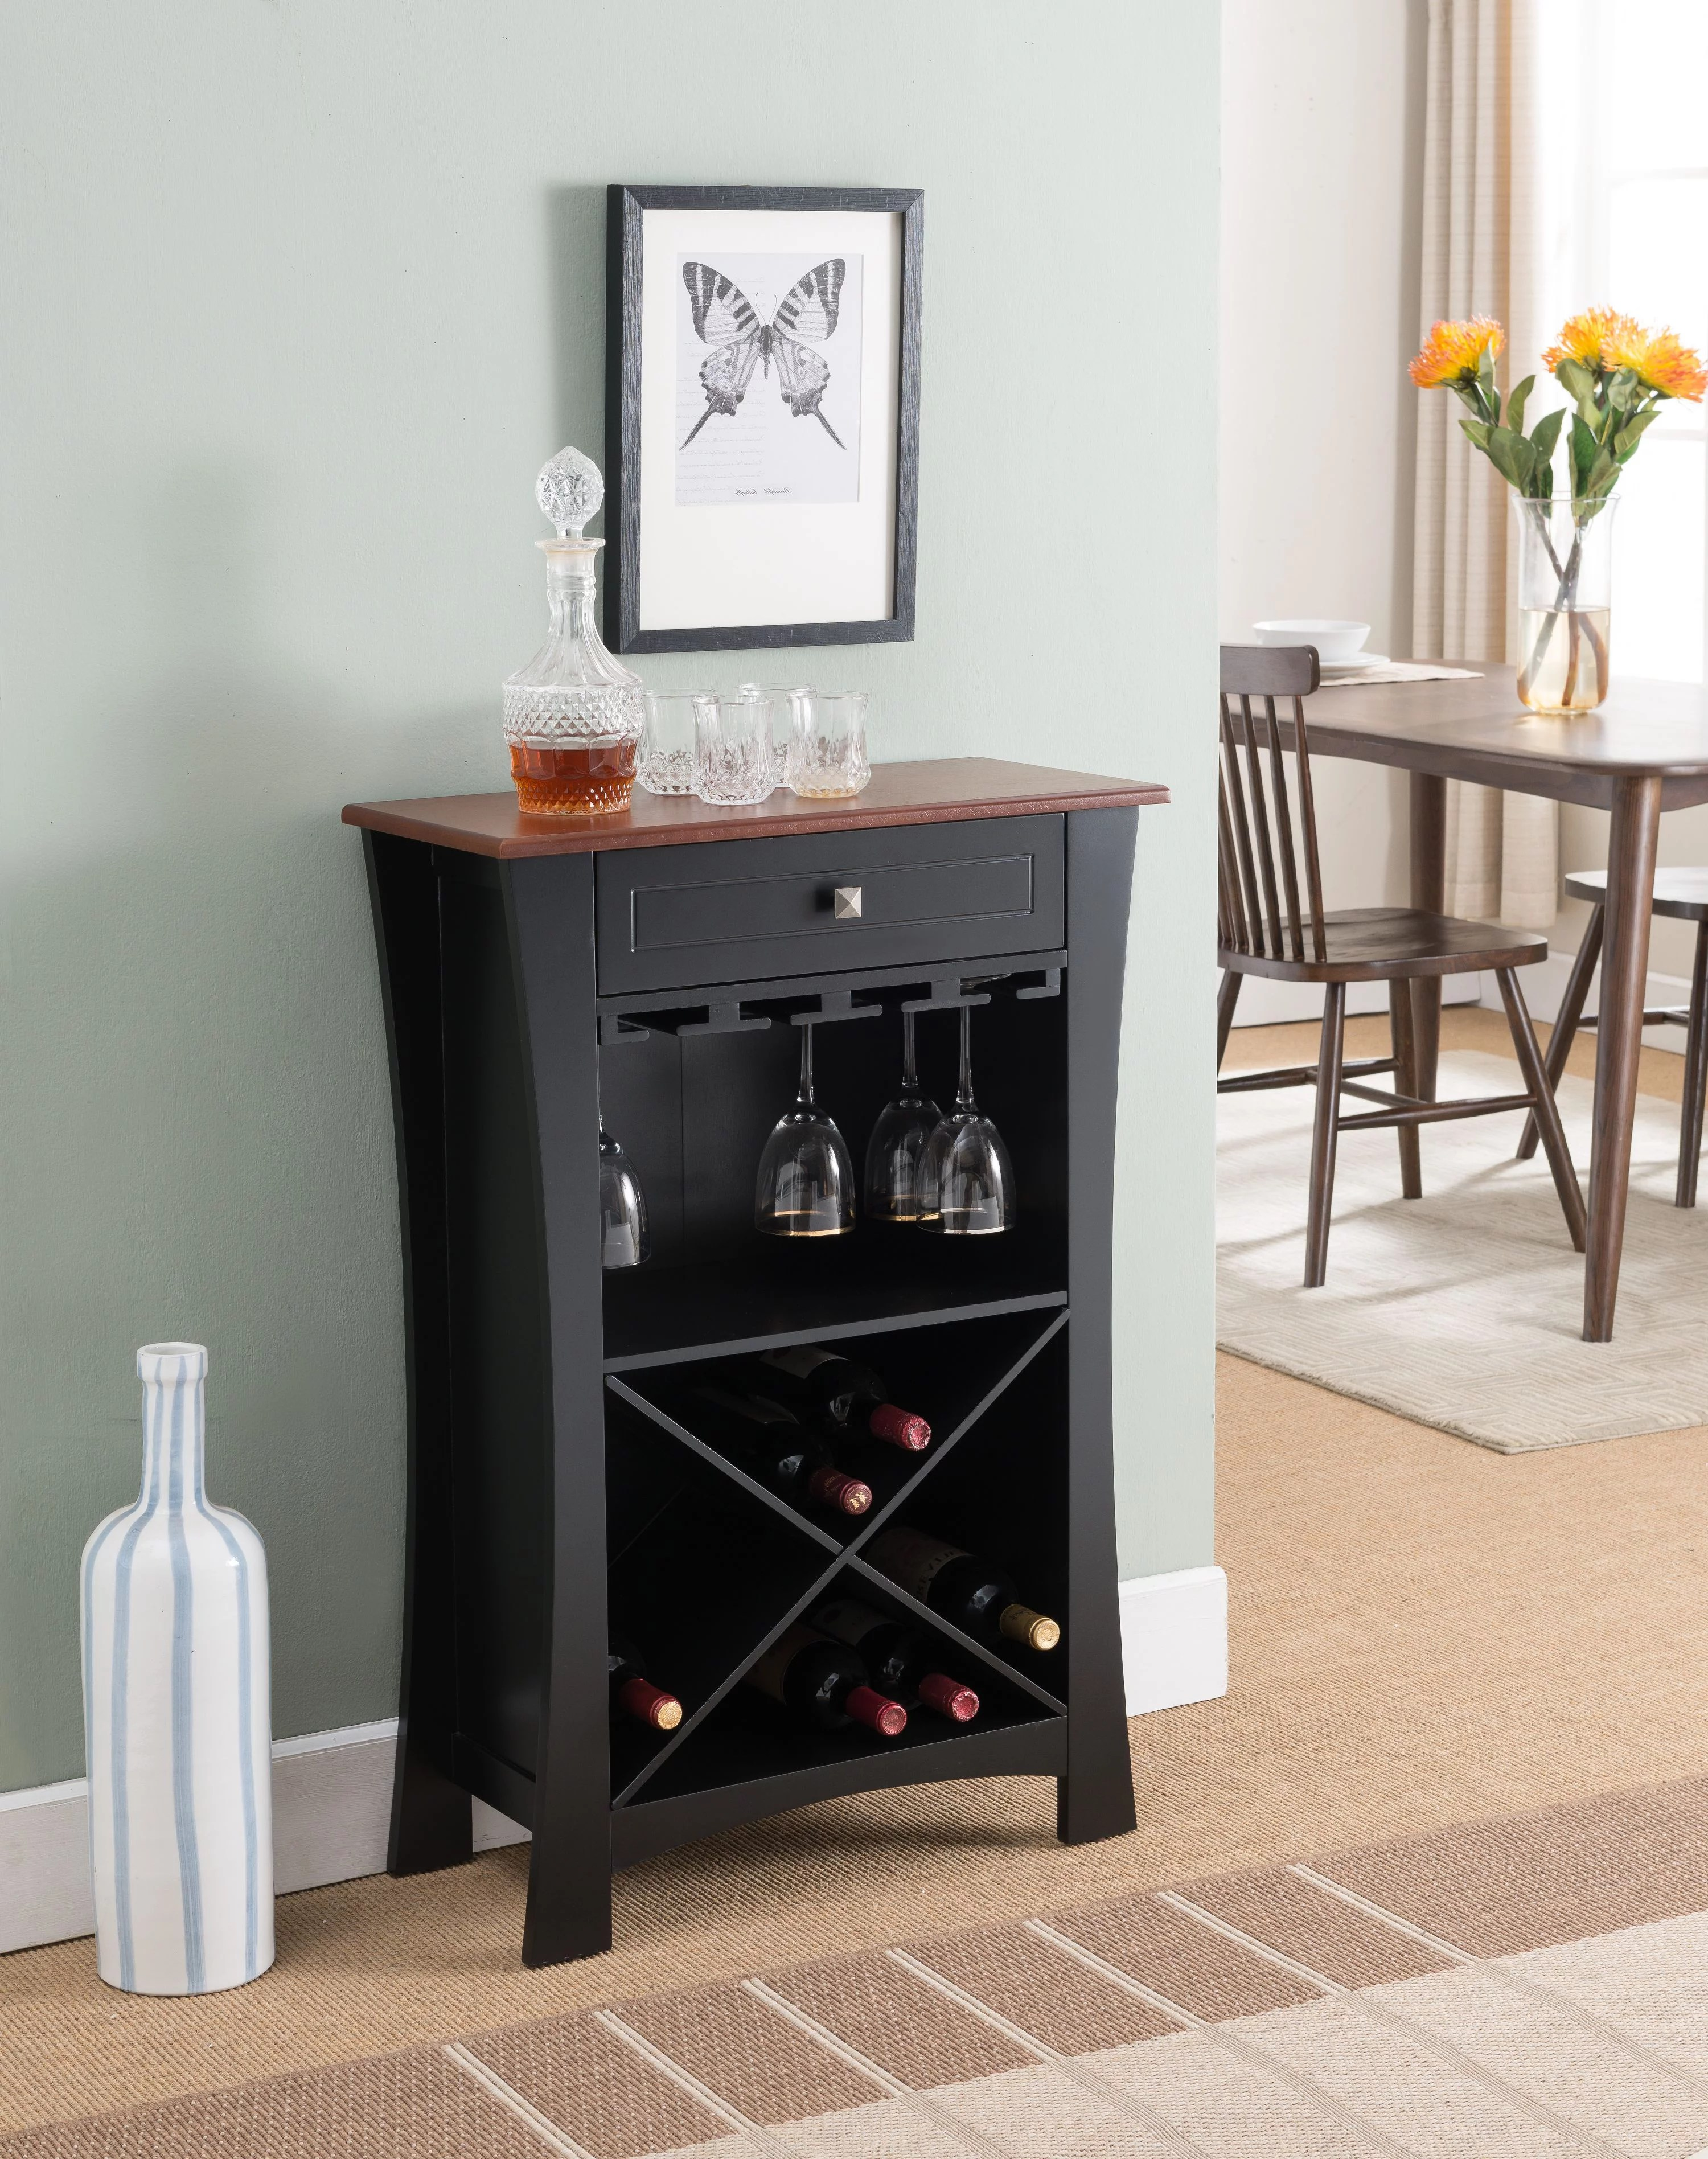 Wine Holder Stand Jasper Black Natural Wood Transitional Wine Rack Buffet Display Stand With Cup Holders Drawer Shelves